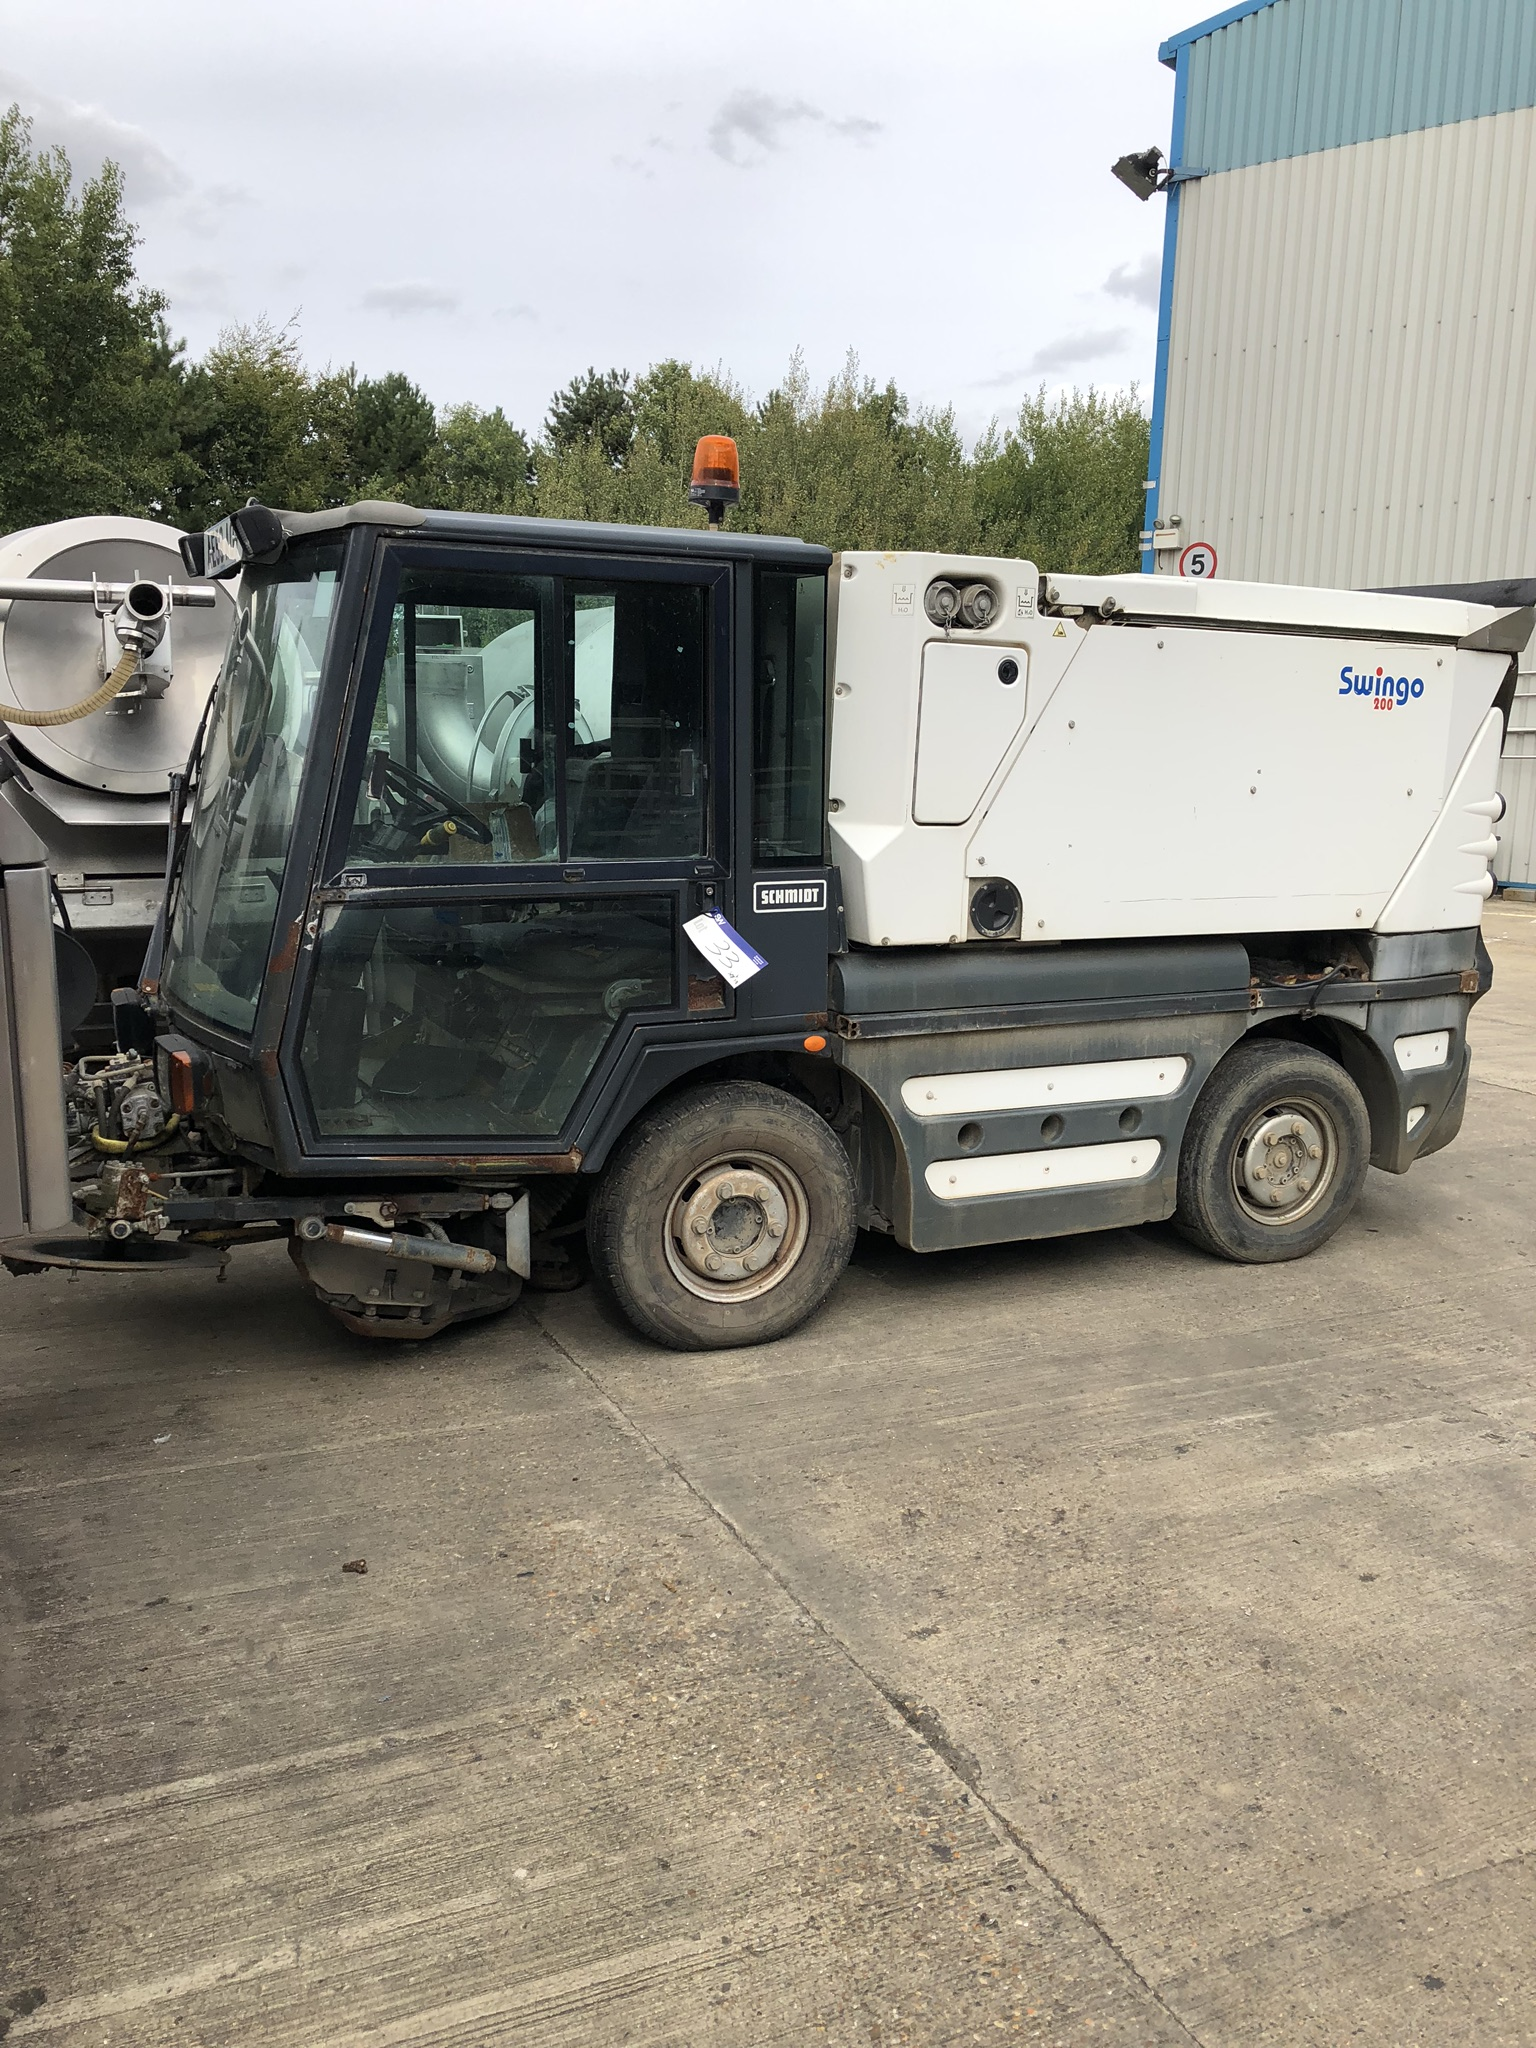 Schmidt Swingo 200 Road Sweeper, registration no. AE59 AOV (understood to require attention - non-